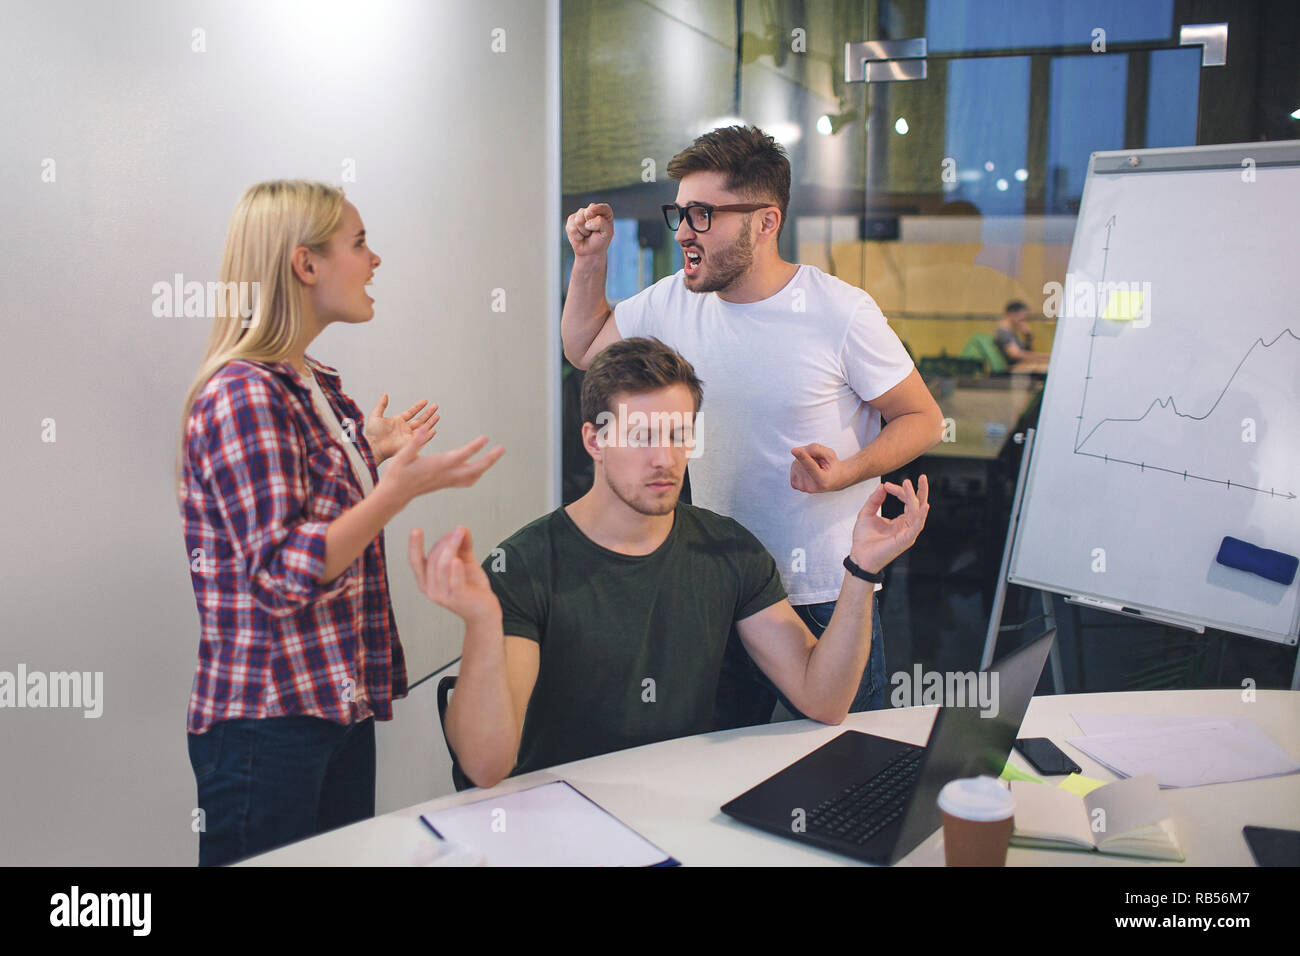 Young bearded man and blonde woamn argue with each other. They stand behind guy who meditates. He keep eyes closed and concentrated. - Stock Image